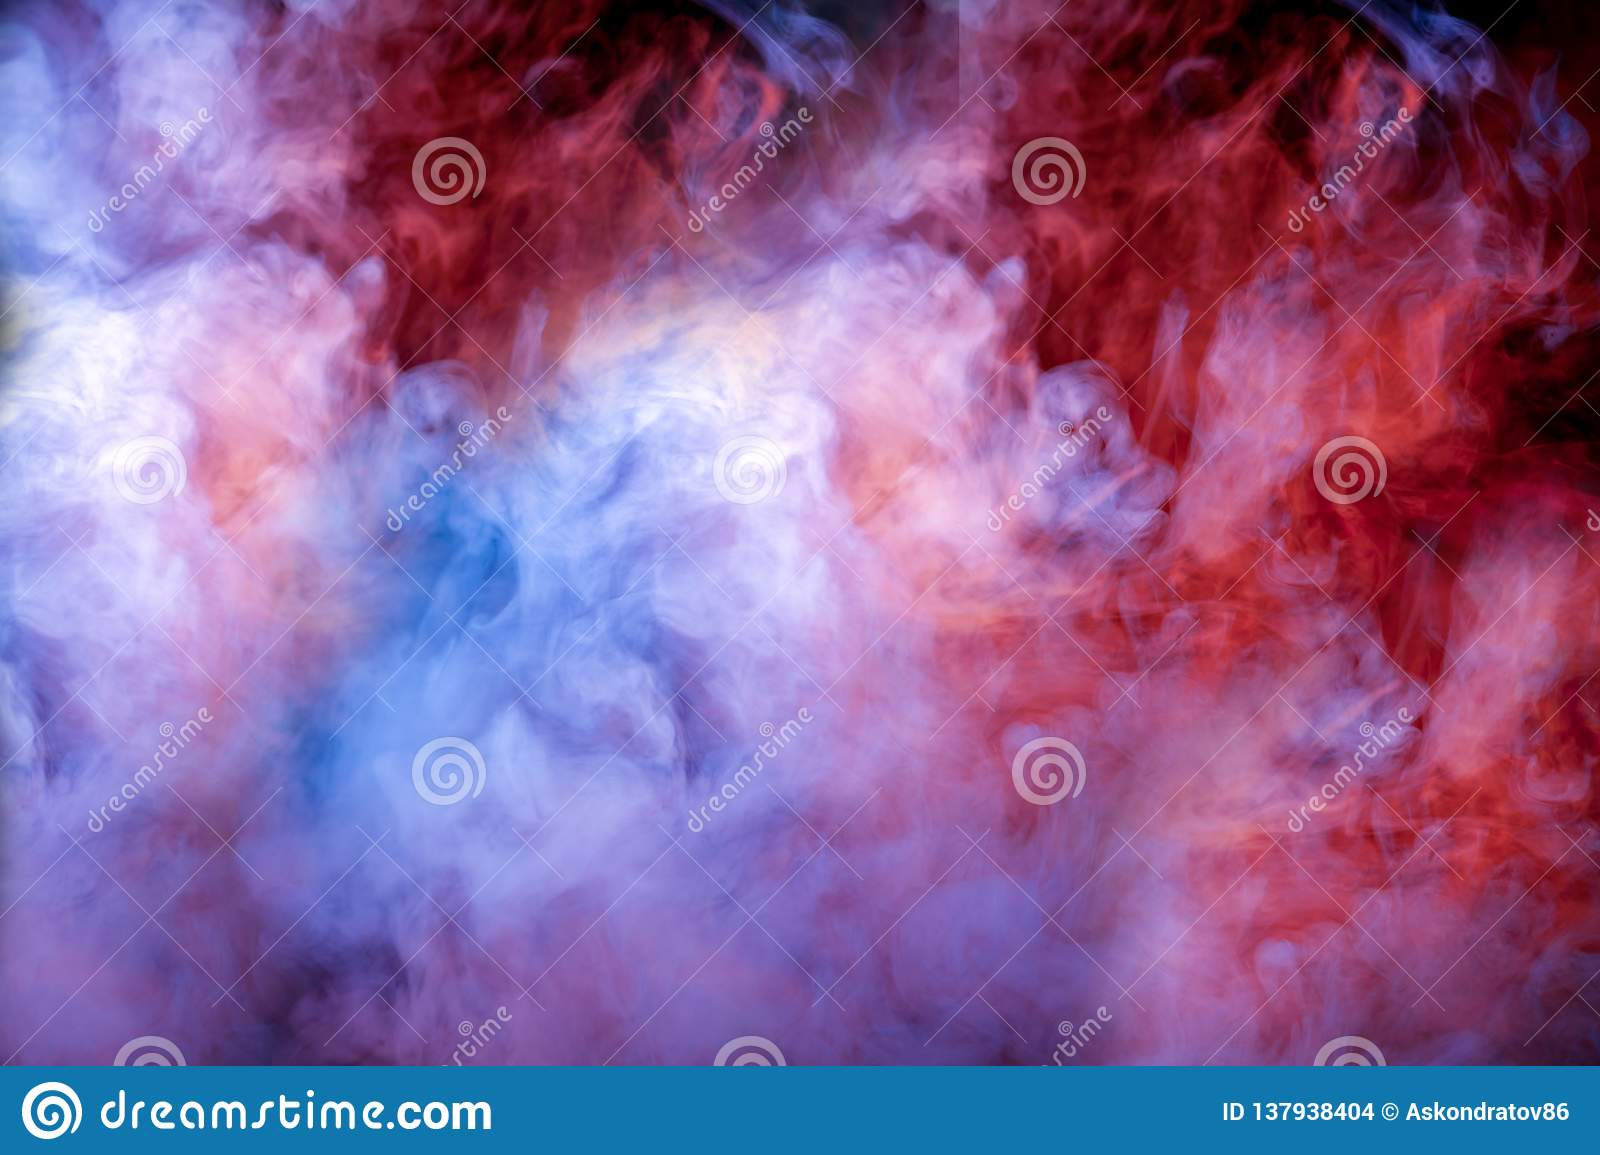 The Beautiful Color Combination Of Blue, Pink, Violet And ...